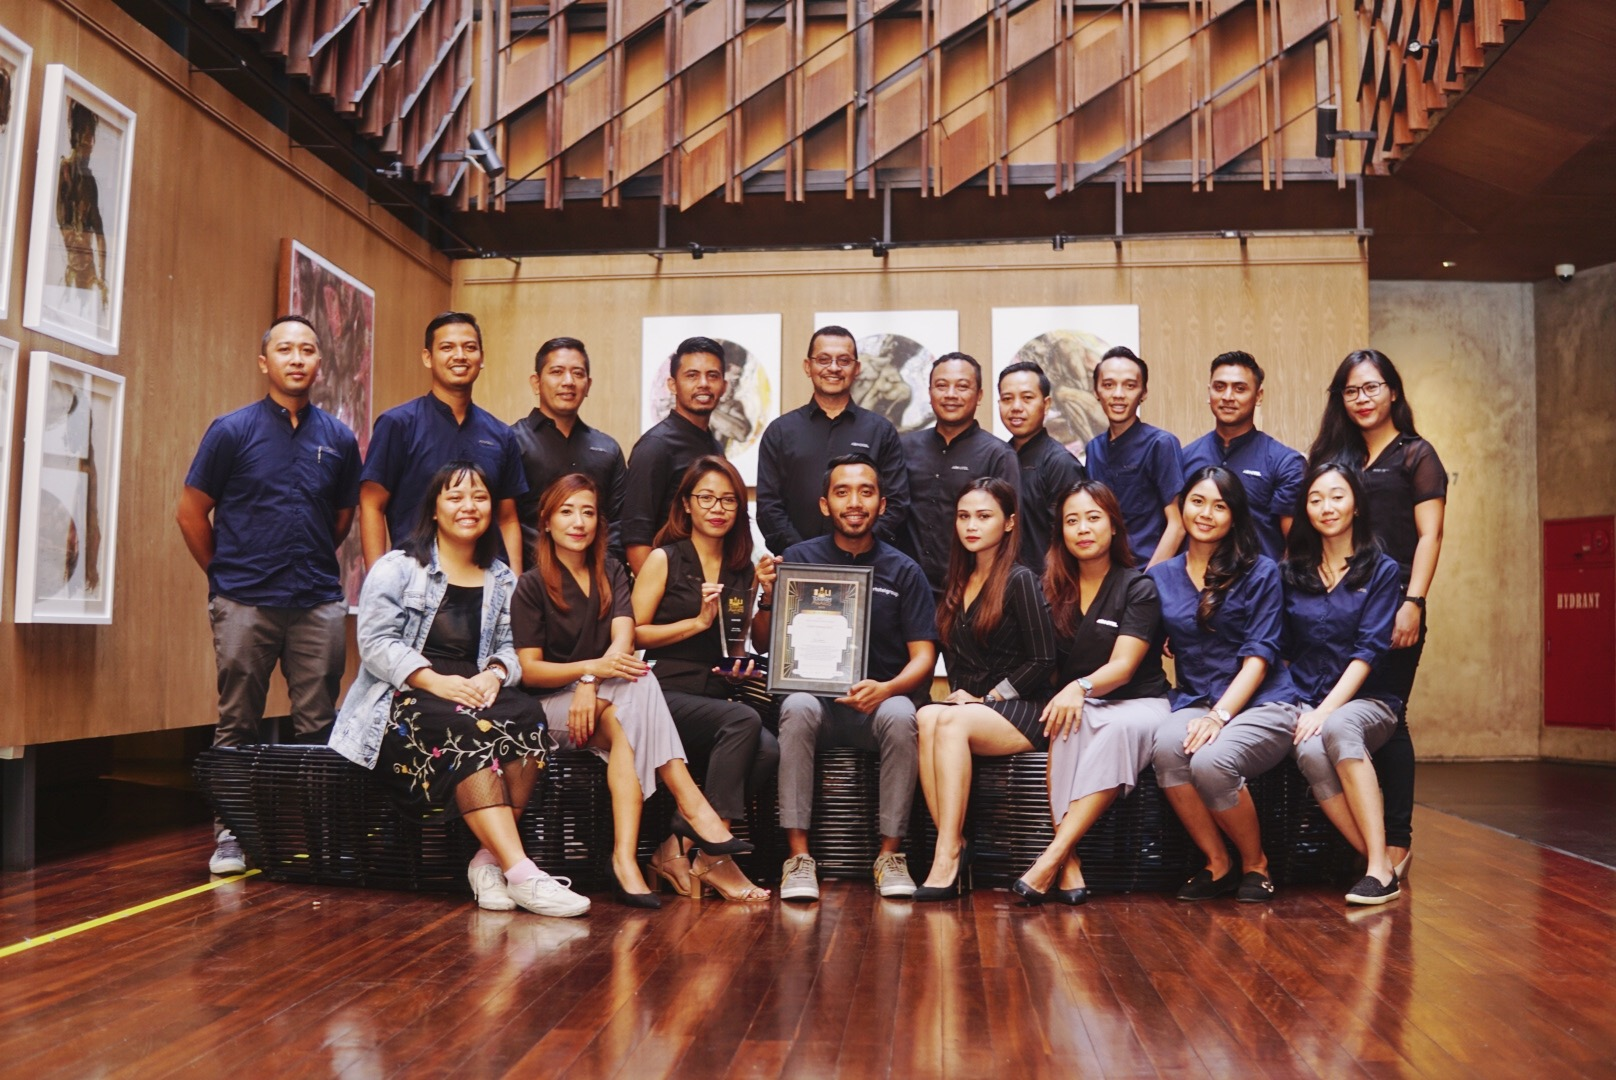 http://highend-traveller.com/artotel-group-bags-3-awards-from-bali-tourism-award-2019/